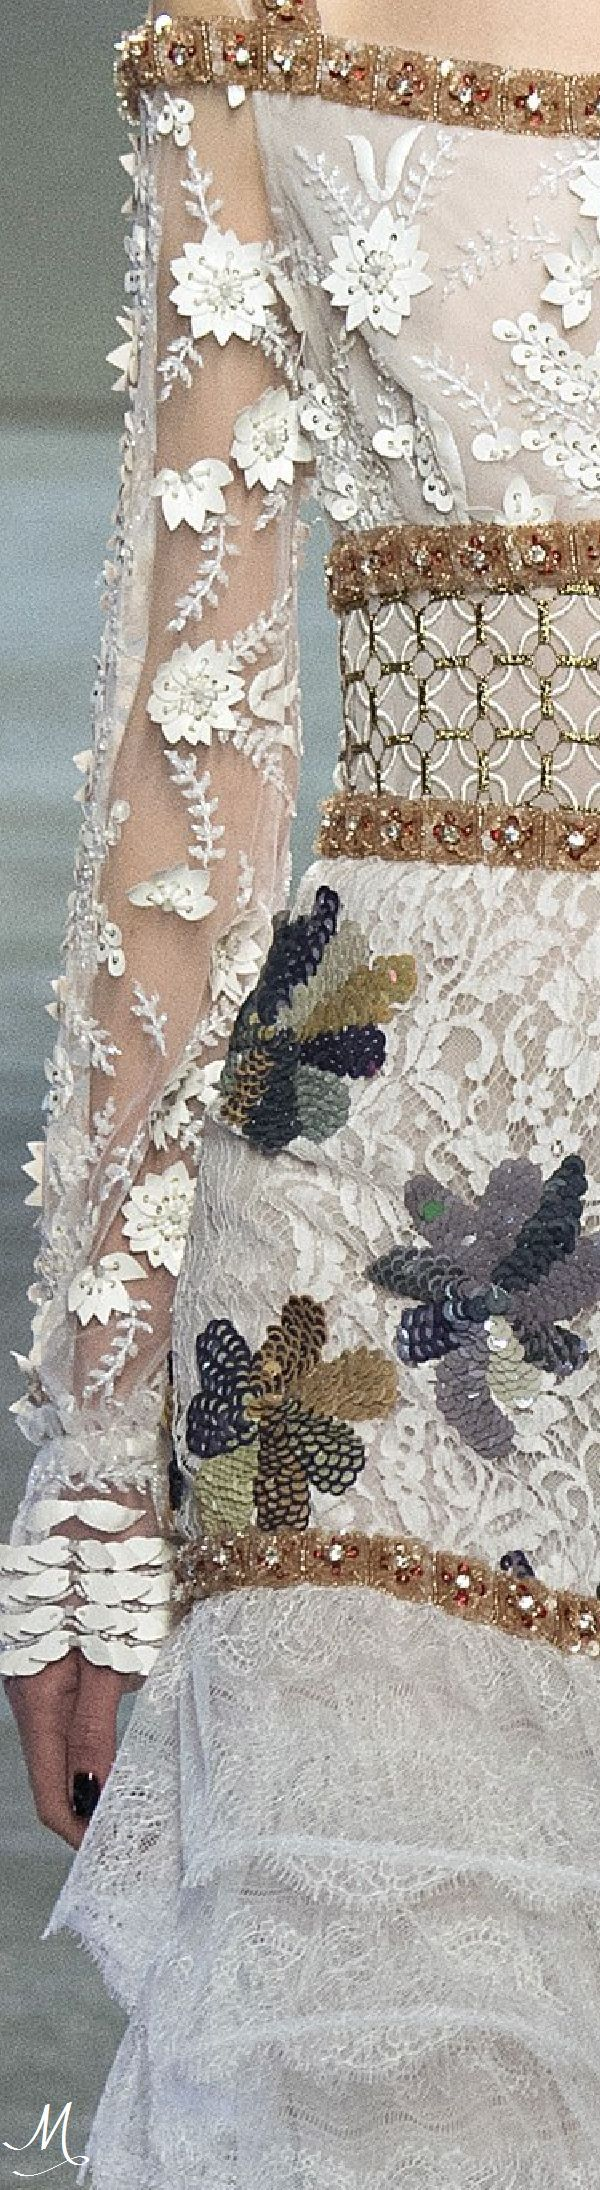 Fall 2016 Rodarte ✿⊱╮ https://www.vogue.com/